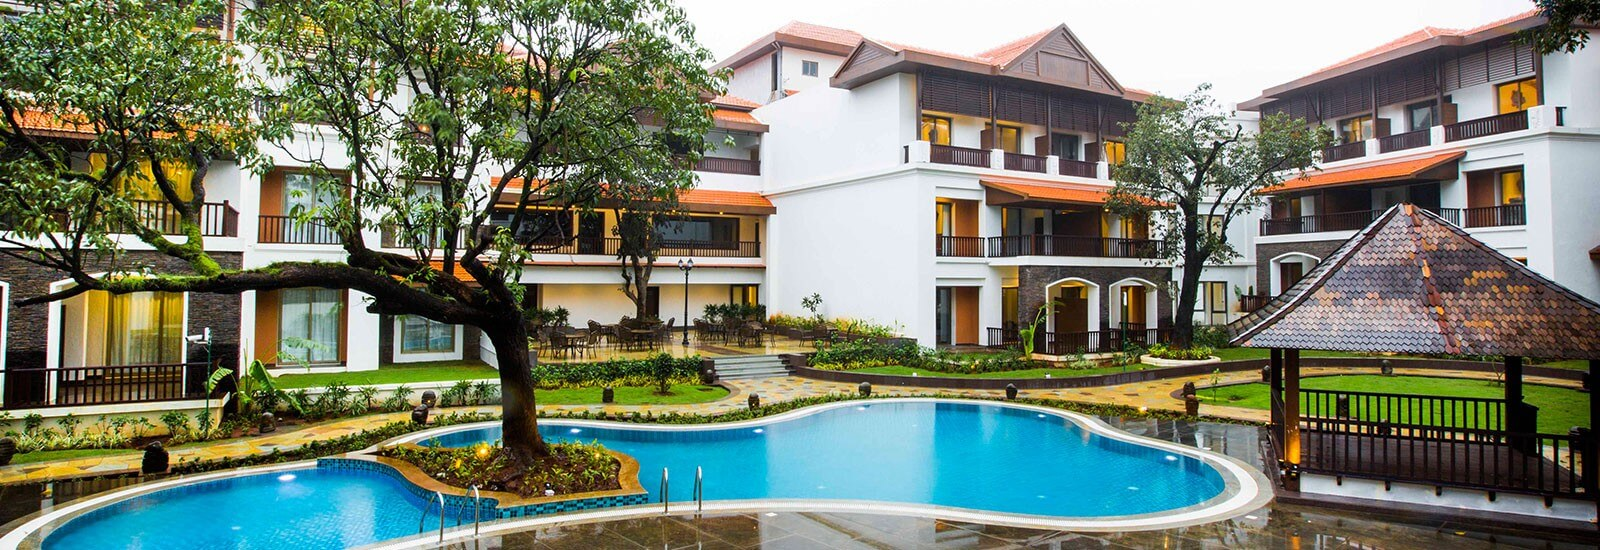 Best Hotels & Resorts In Lonavala - Rhythm Lonavala